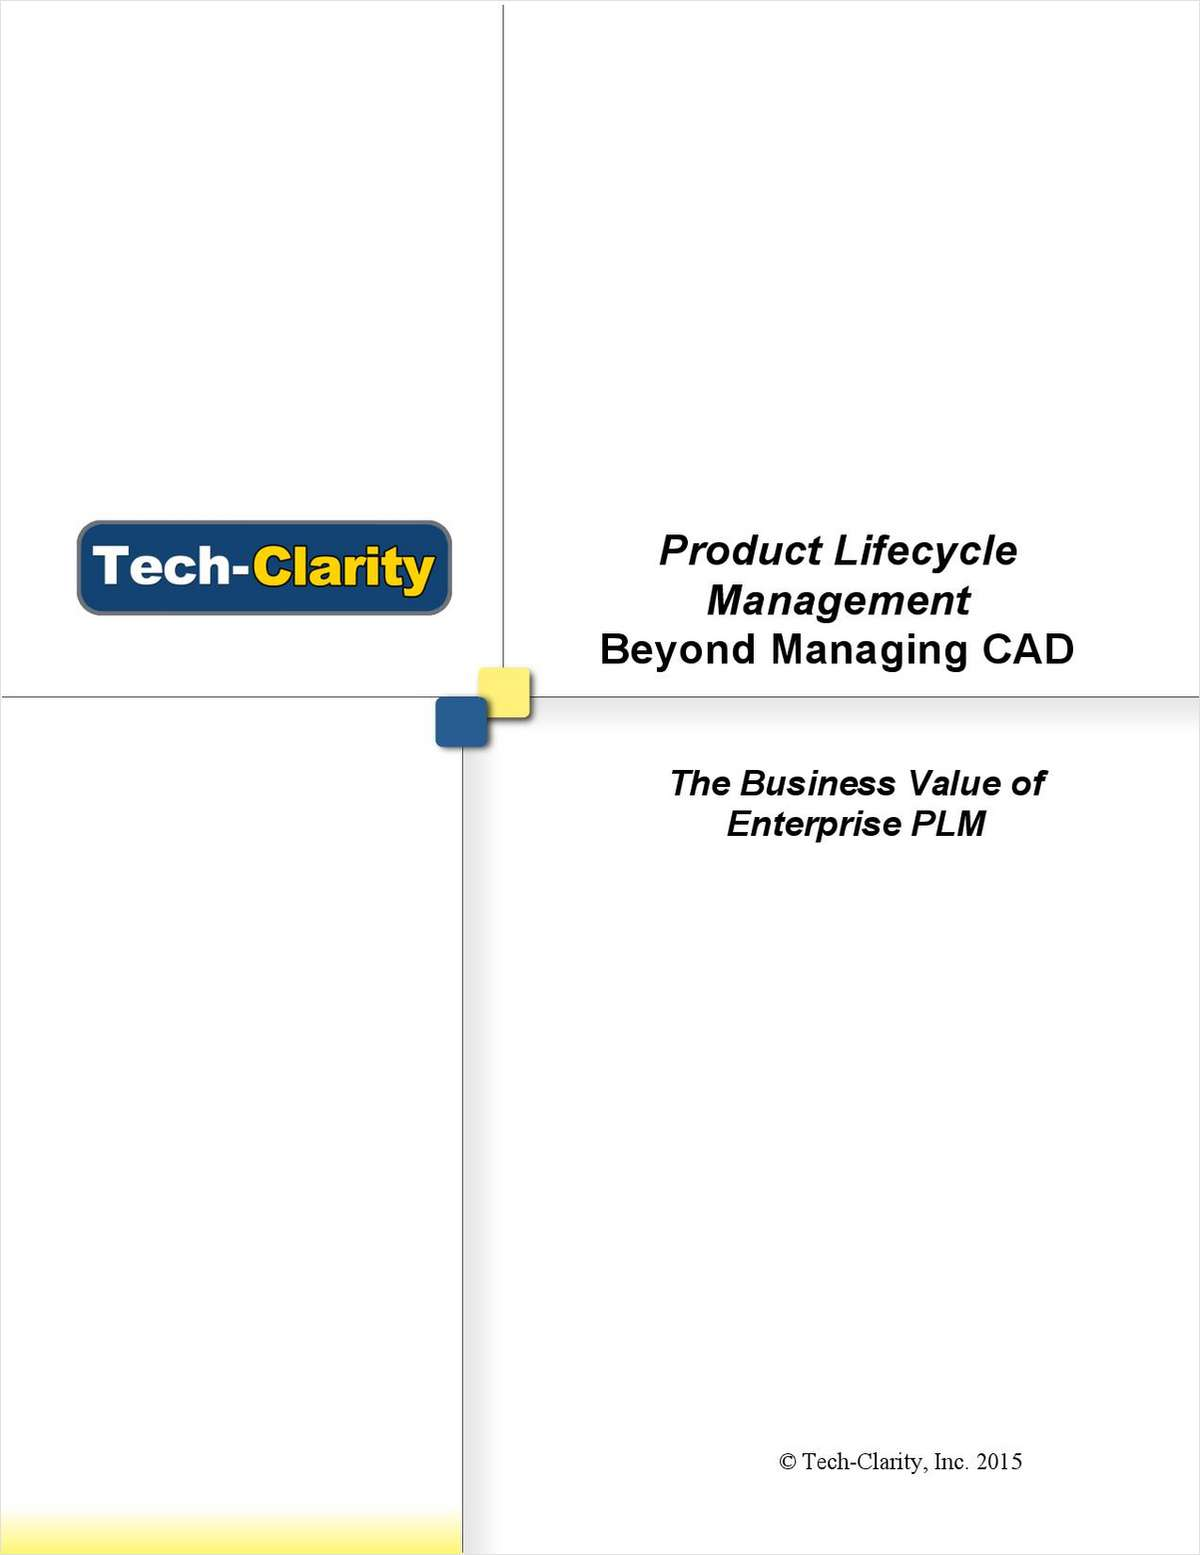 Product Lifecycle Management - Beyond Managing CAD